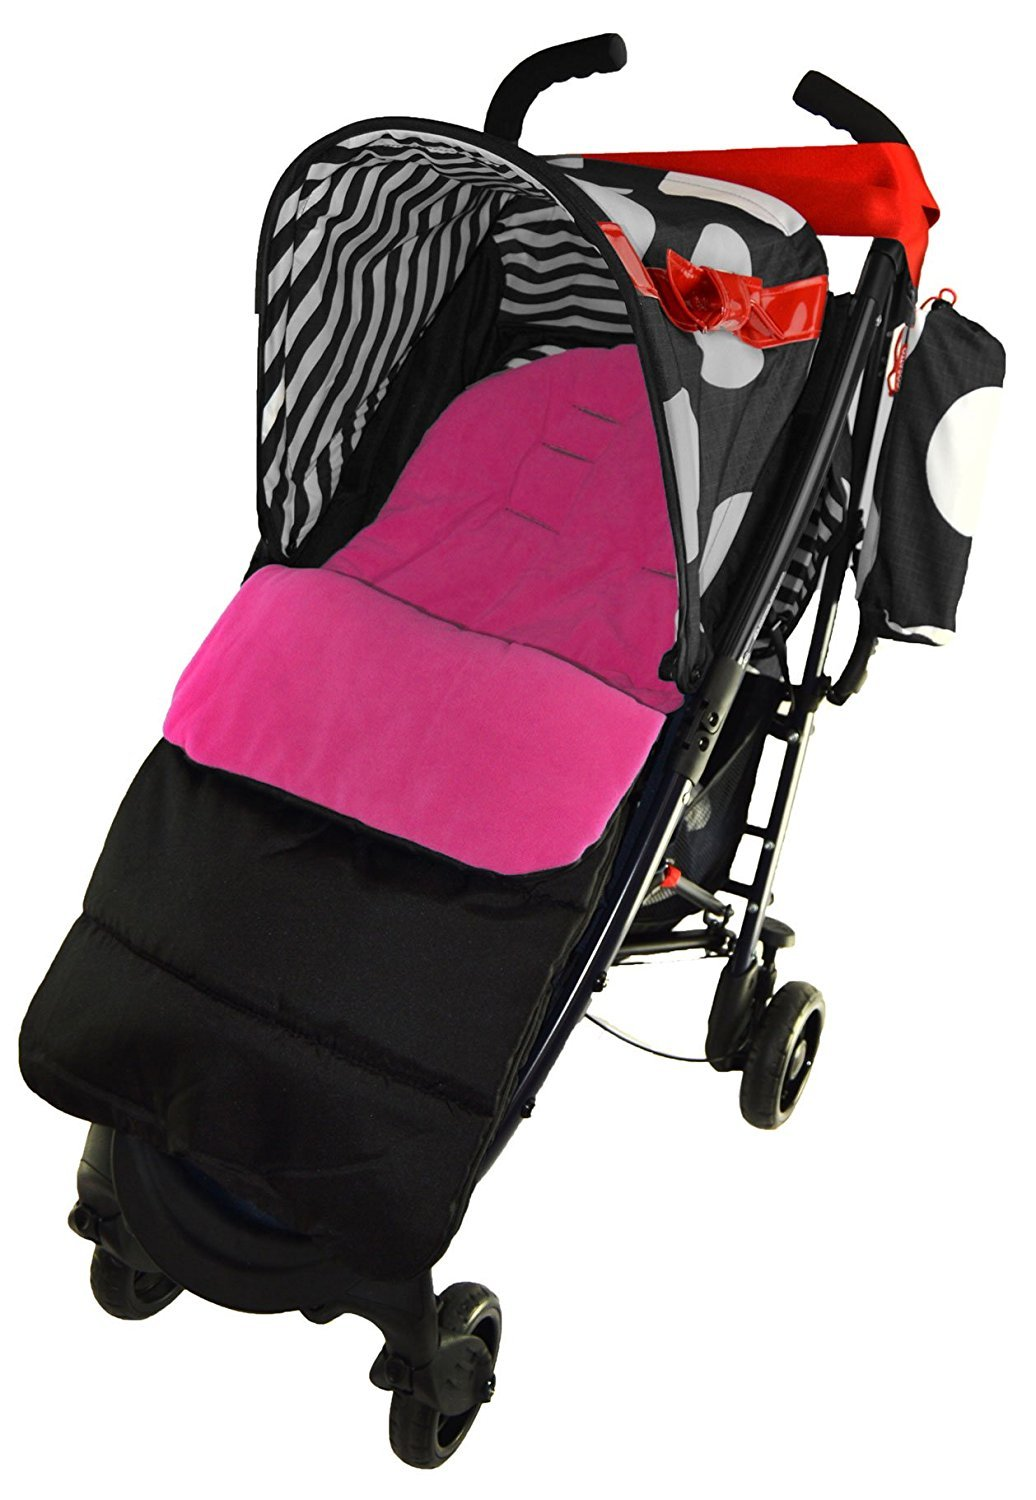 Footmuff//Cosy Toes Compatible with iCandy Strawberry Pushchair Pink Rose